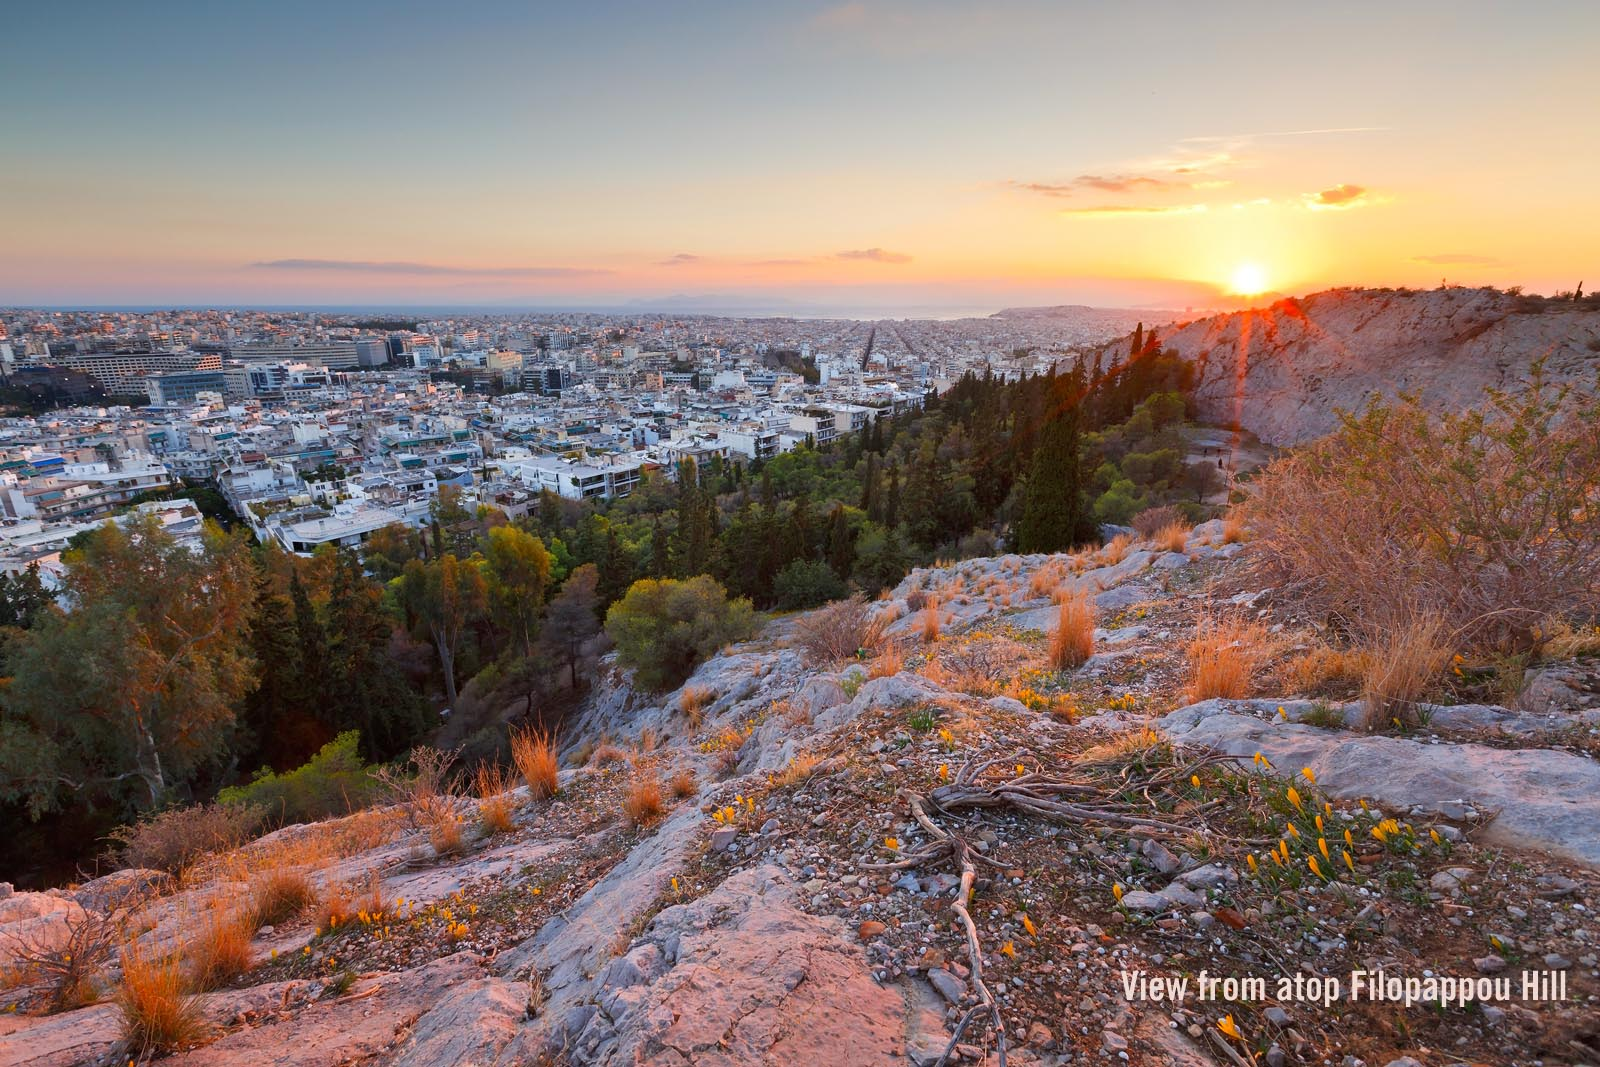 Enlarged photo: Filopappou Hill in Athens Greece